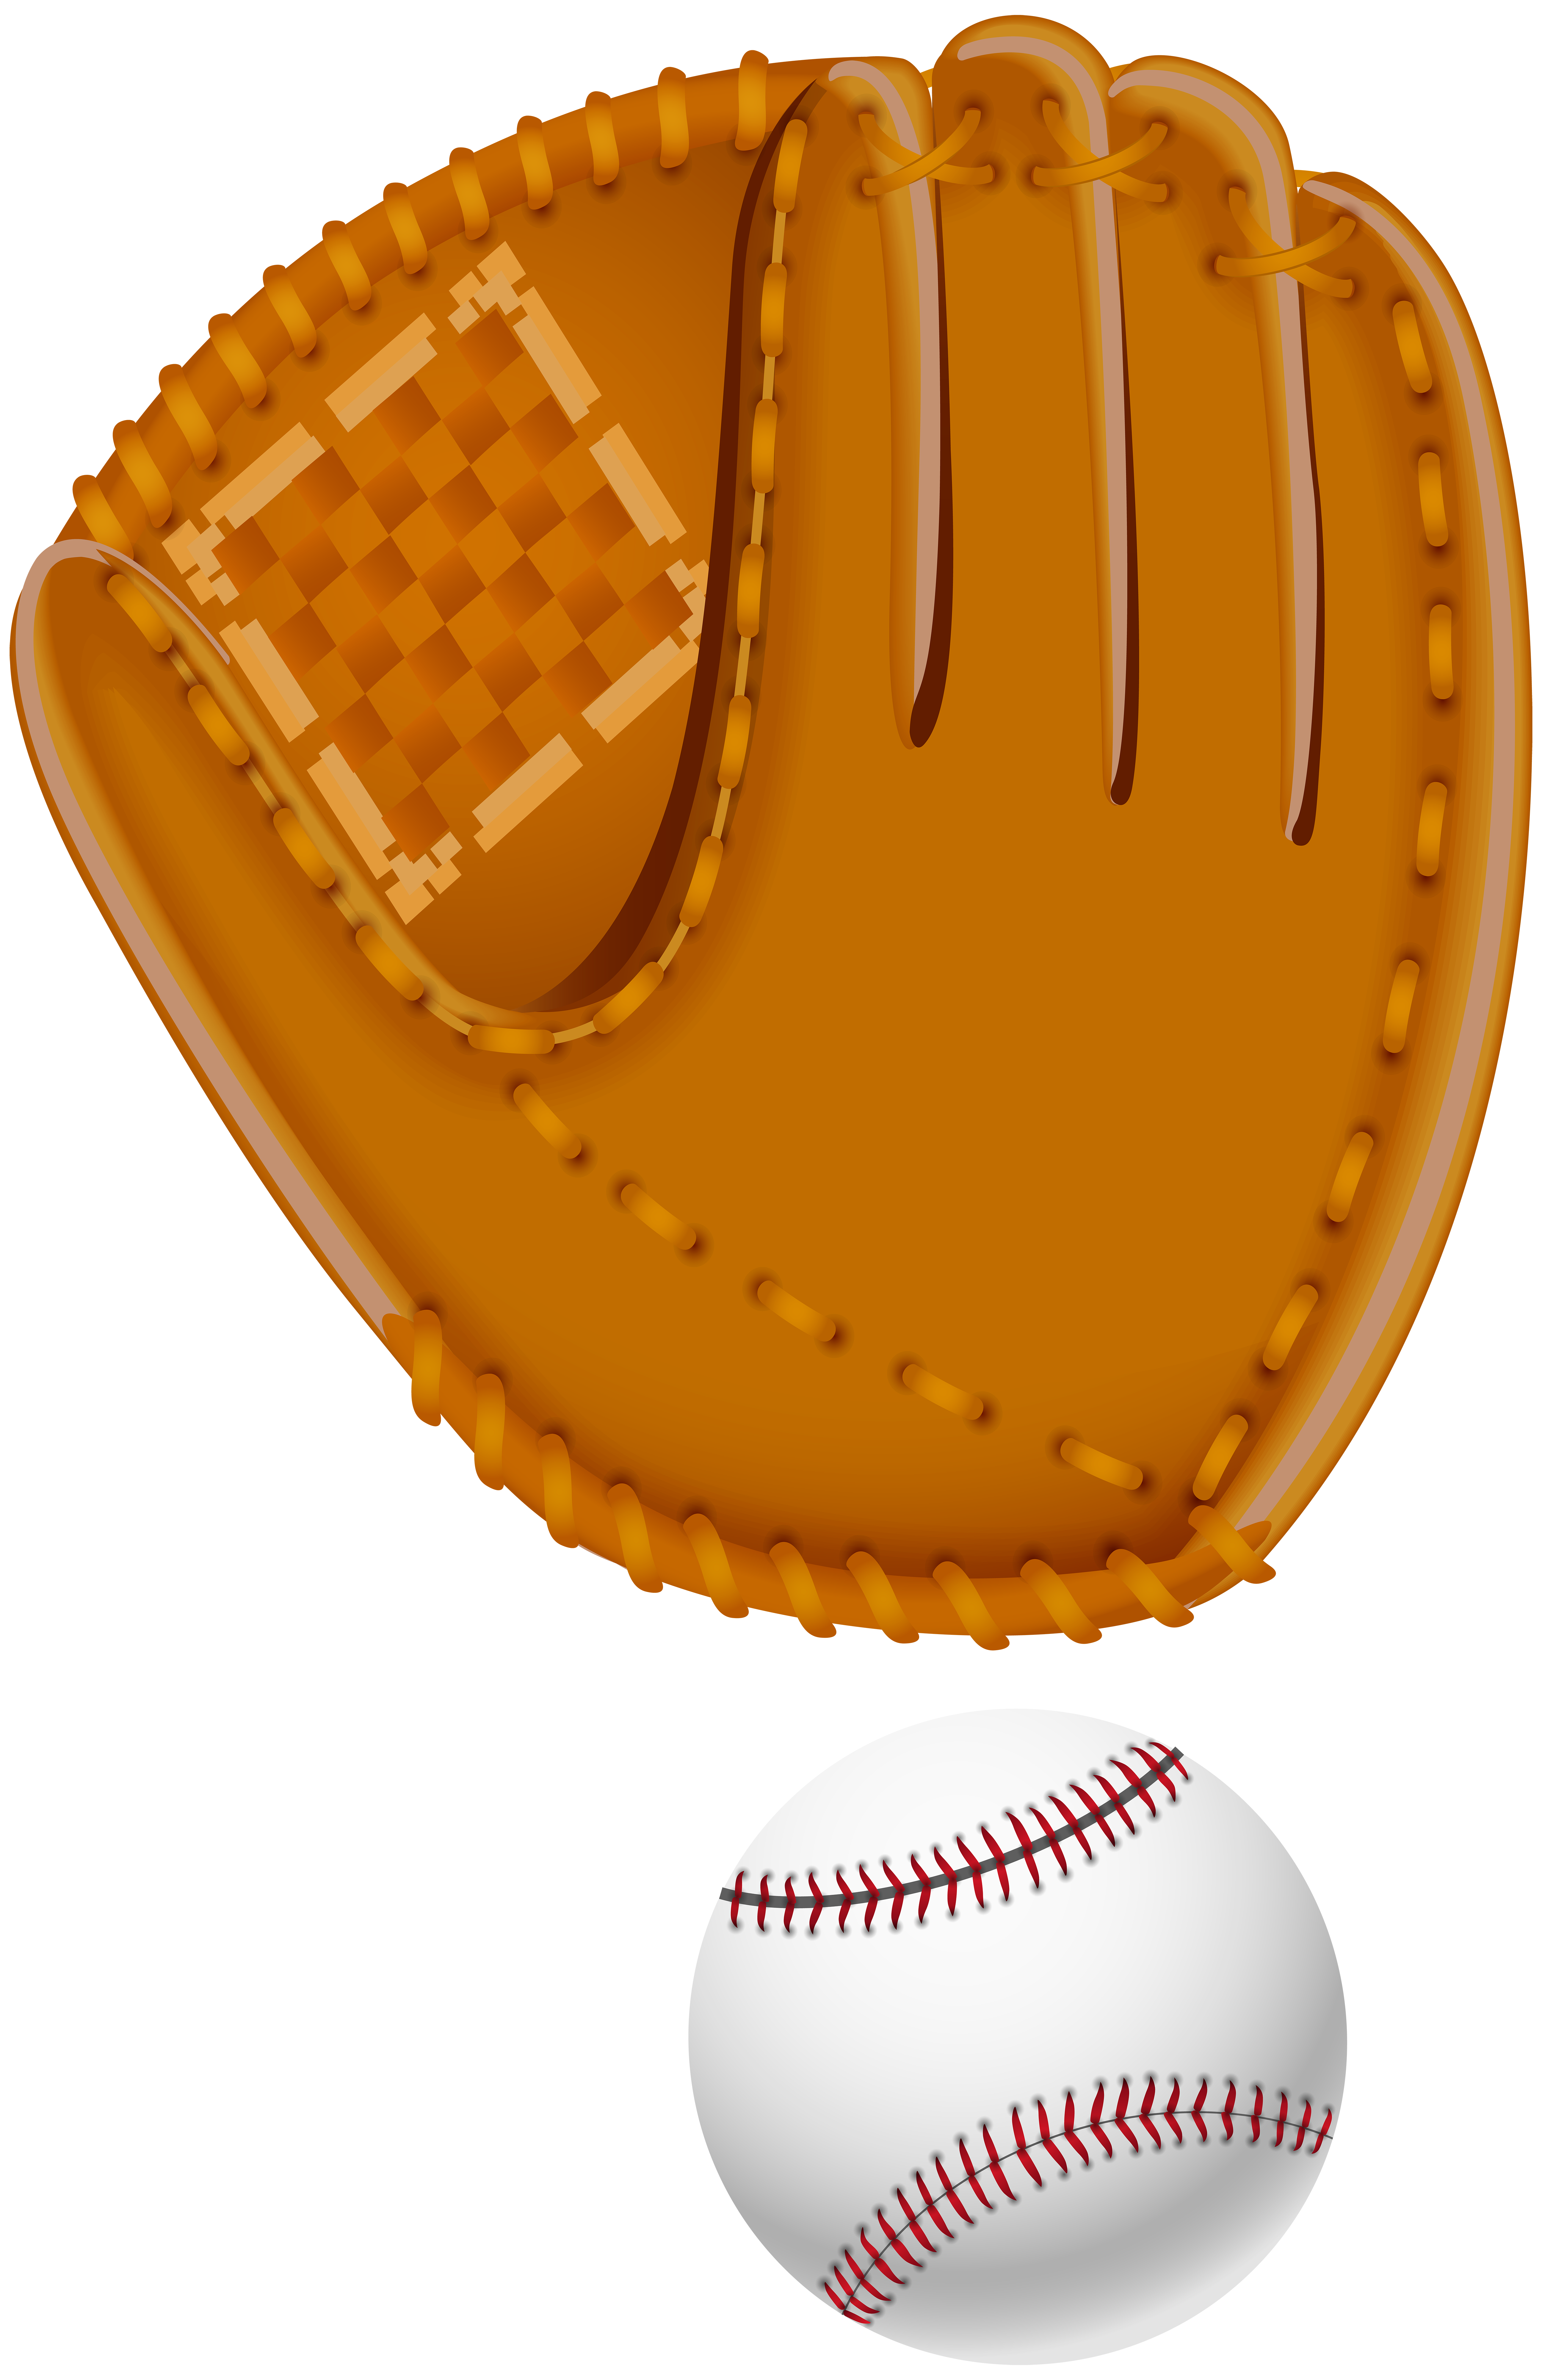 Glove clip art image. Numbers clipart baseball